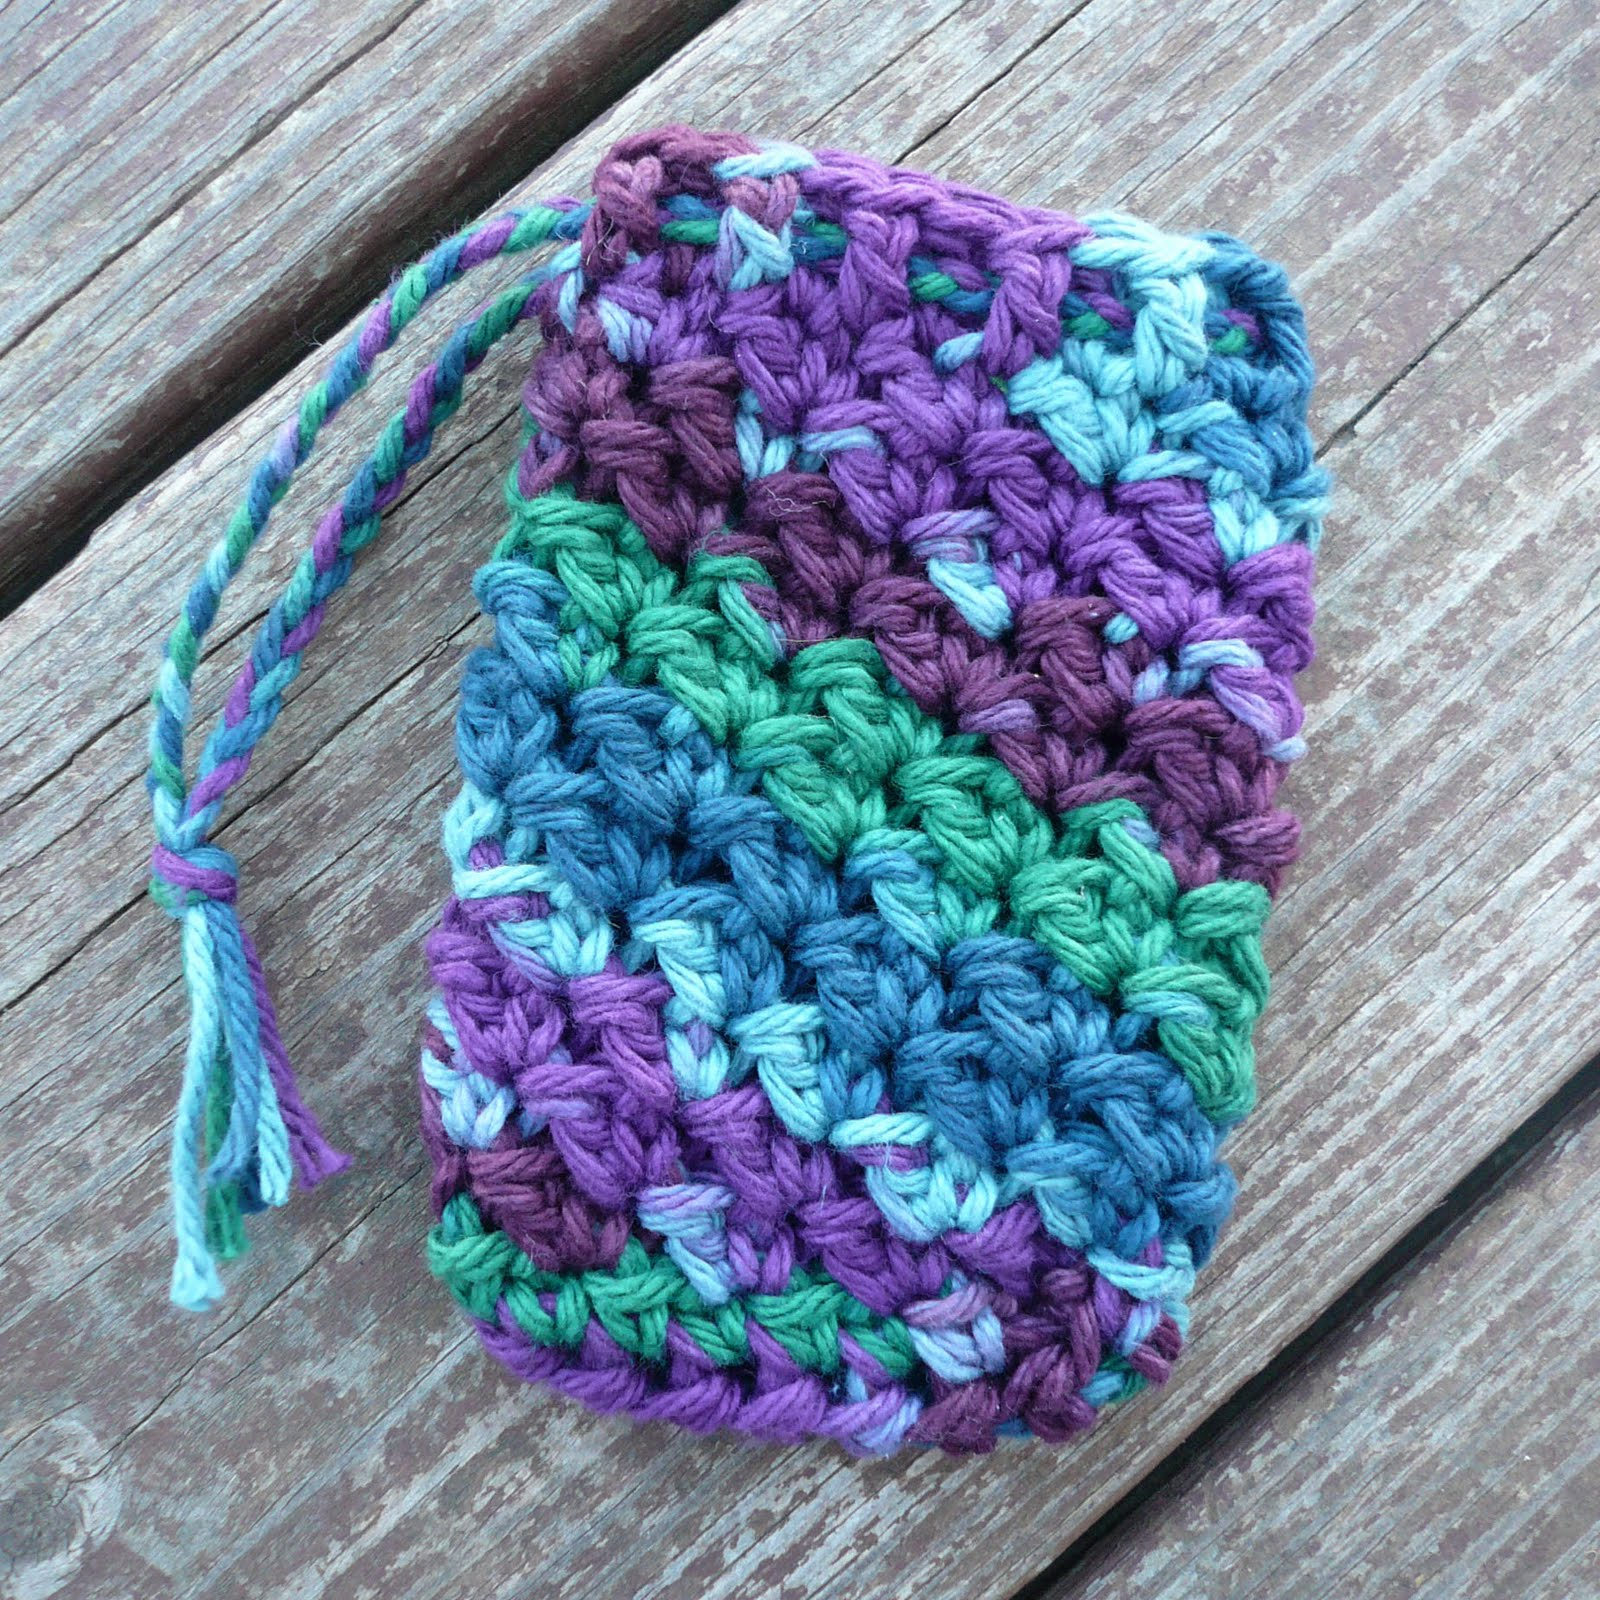 Free Crochet Pattern Soap Bag : Danyel Pink Designs: CROCHET PATTERN - Textured Soap Saver